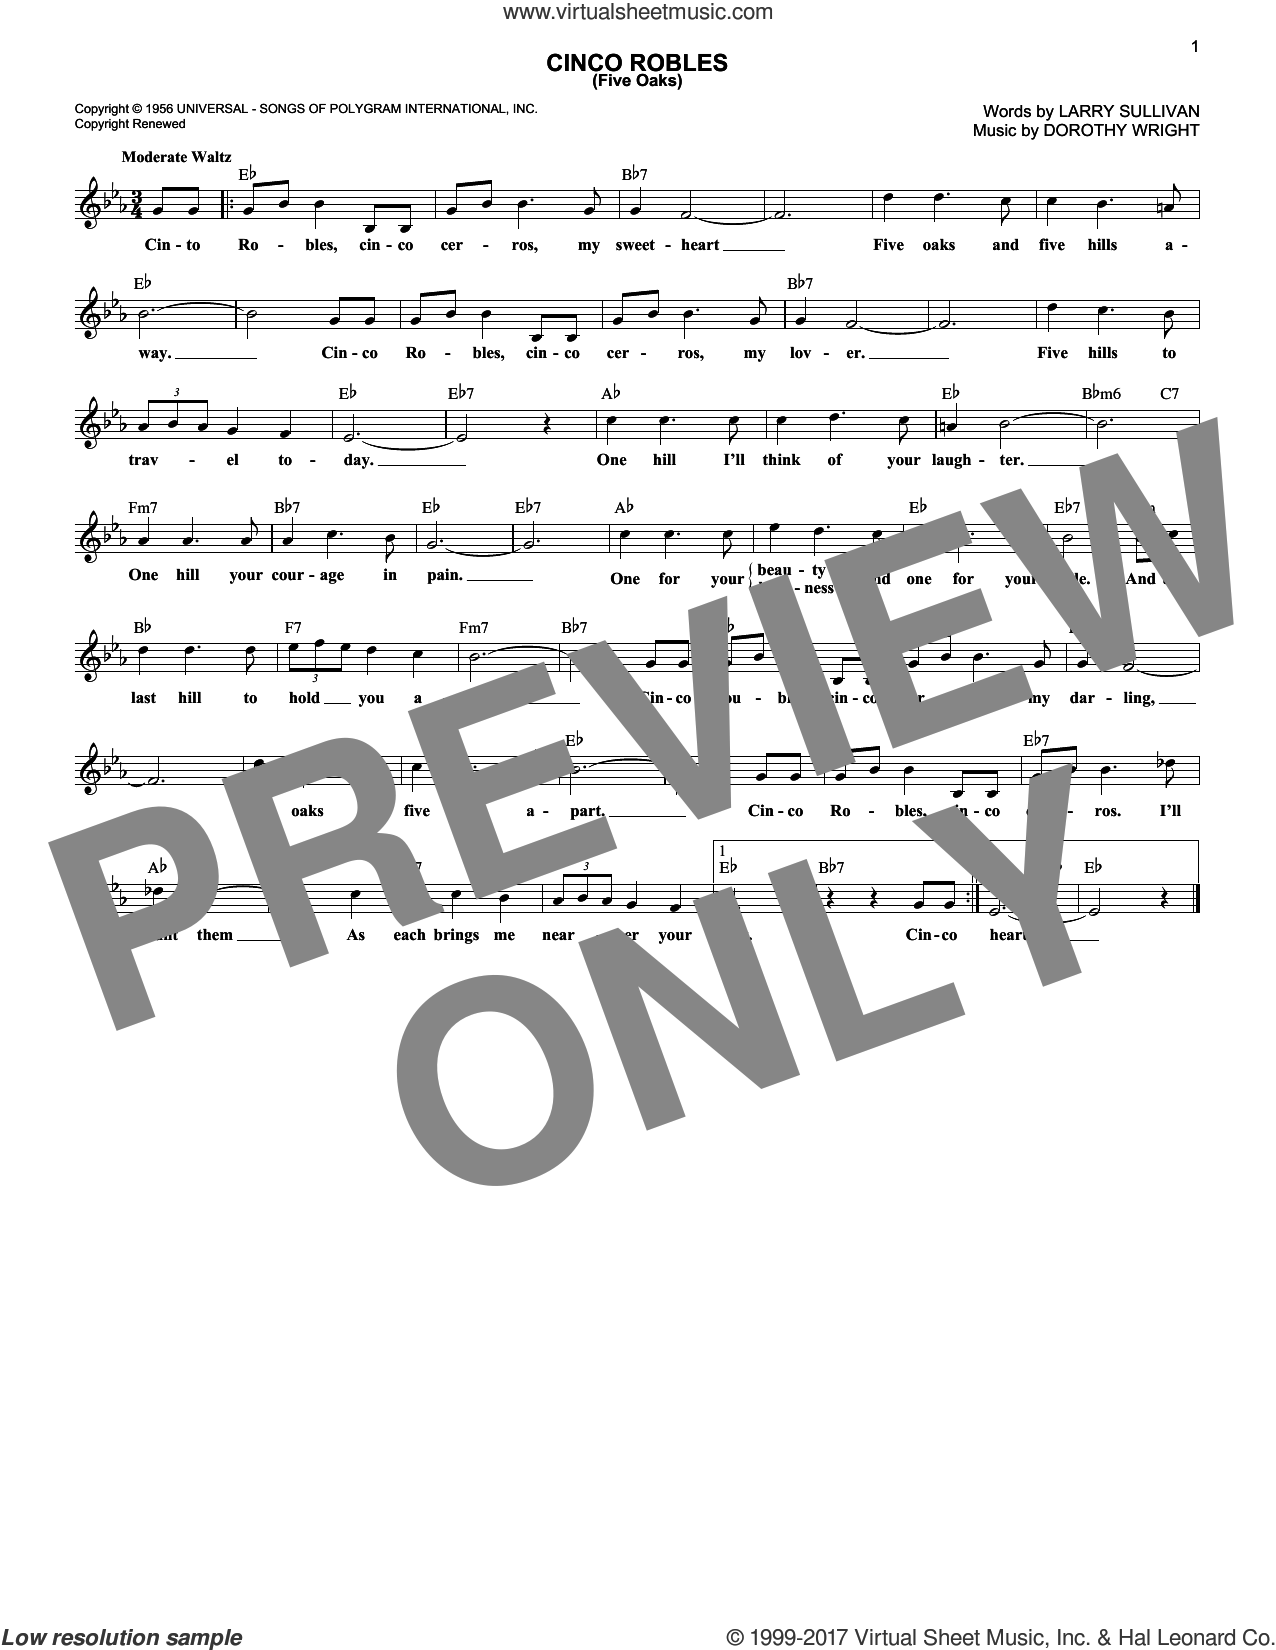 Cinco Robles (Five Oaks) sheet music for voice and other instruments (fake book) by Les Paul & Mary Ford, Russell Arms, Dorothy Wright and Larry Sullivan, intermediate skill level